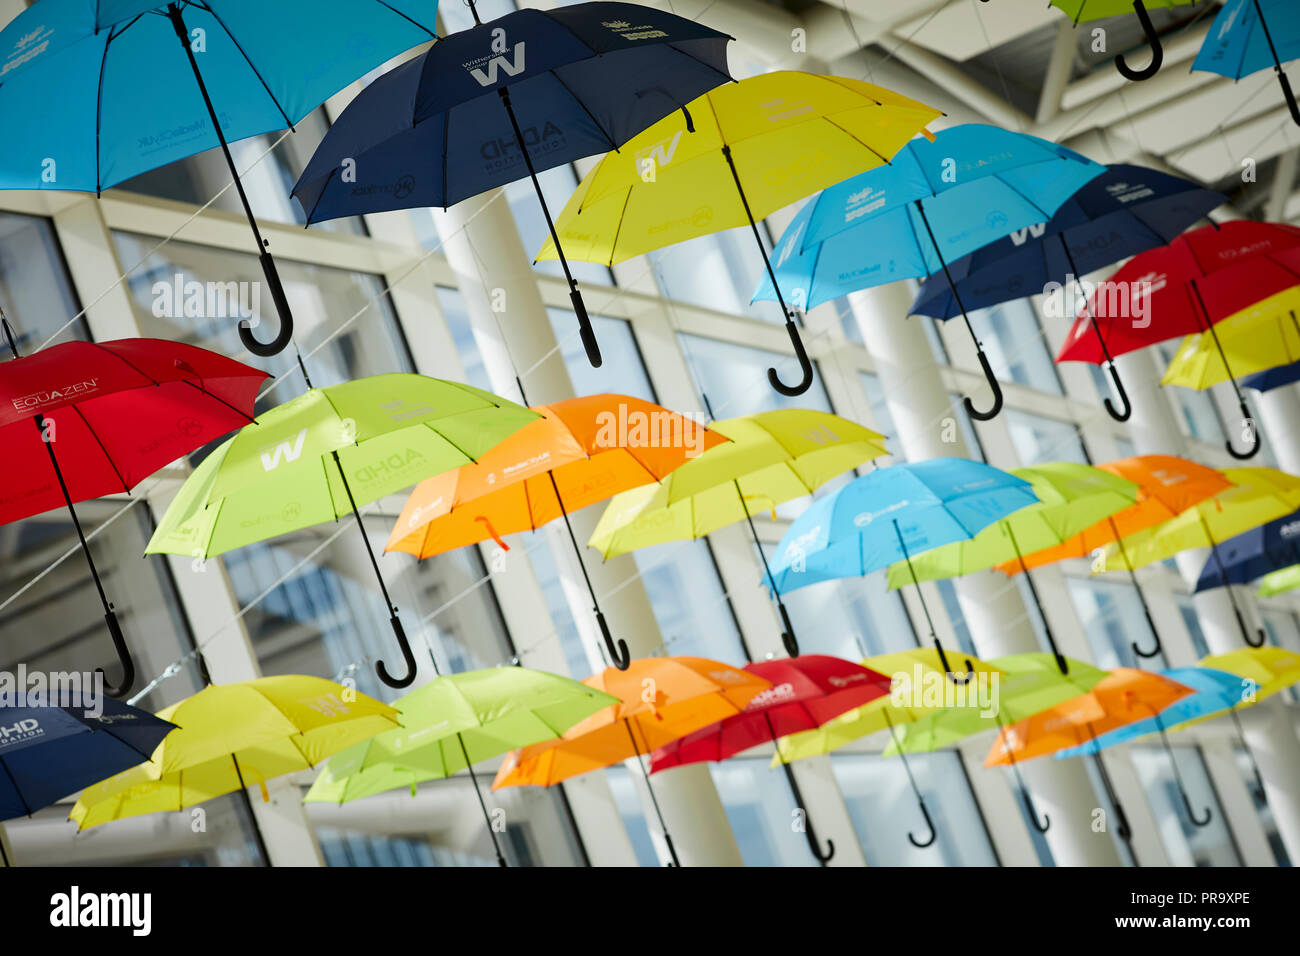 Brightly coloured umbrellas suspended in MediaCityUK Salford Quays to raise awareness of Attention Deficit Hyperactivity Disorder (ADHD) and autism - Stock Image